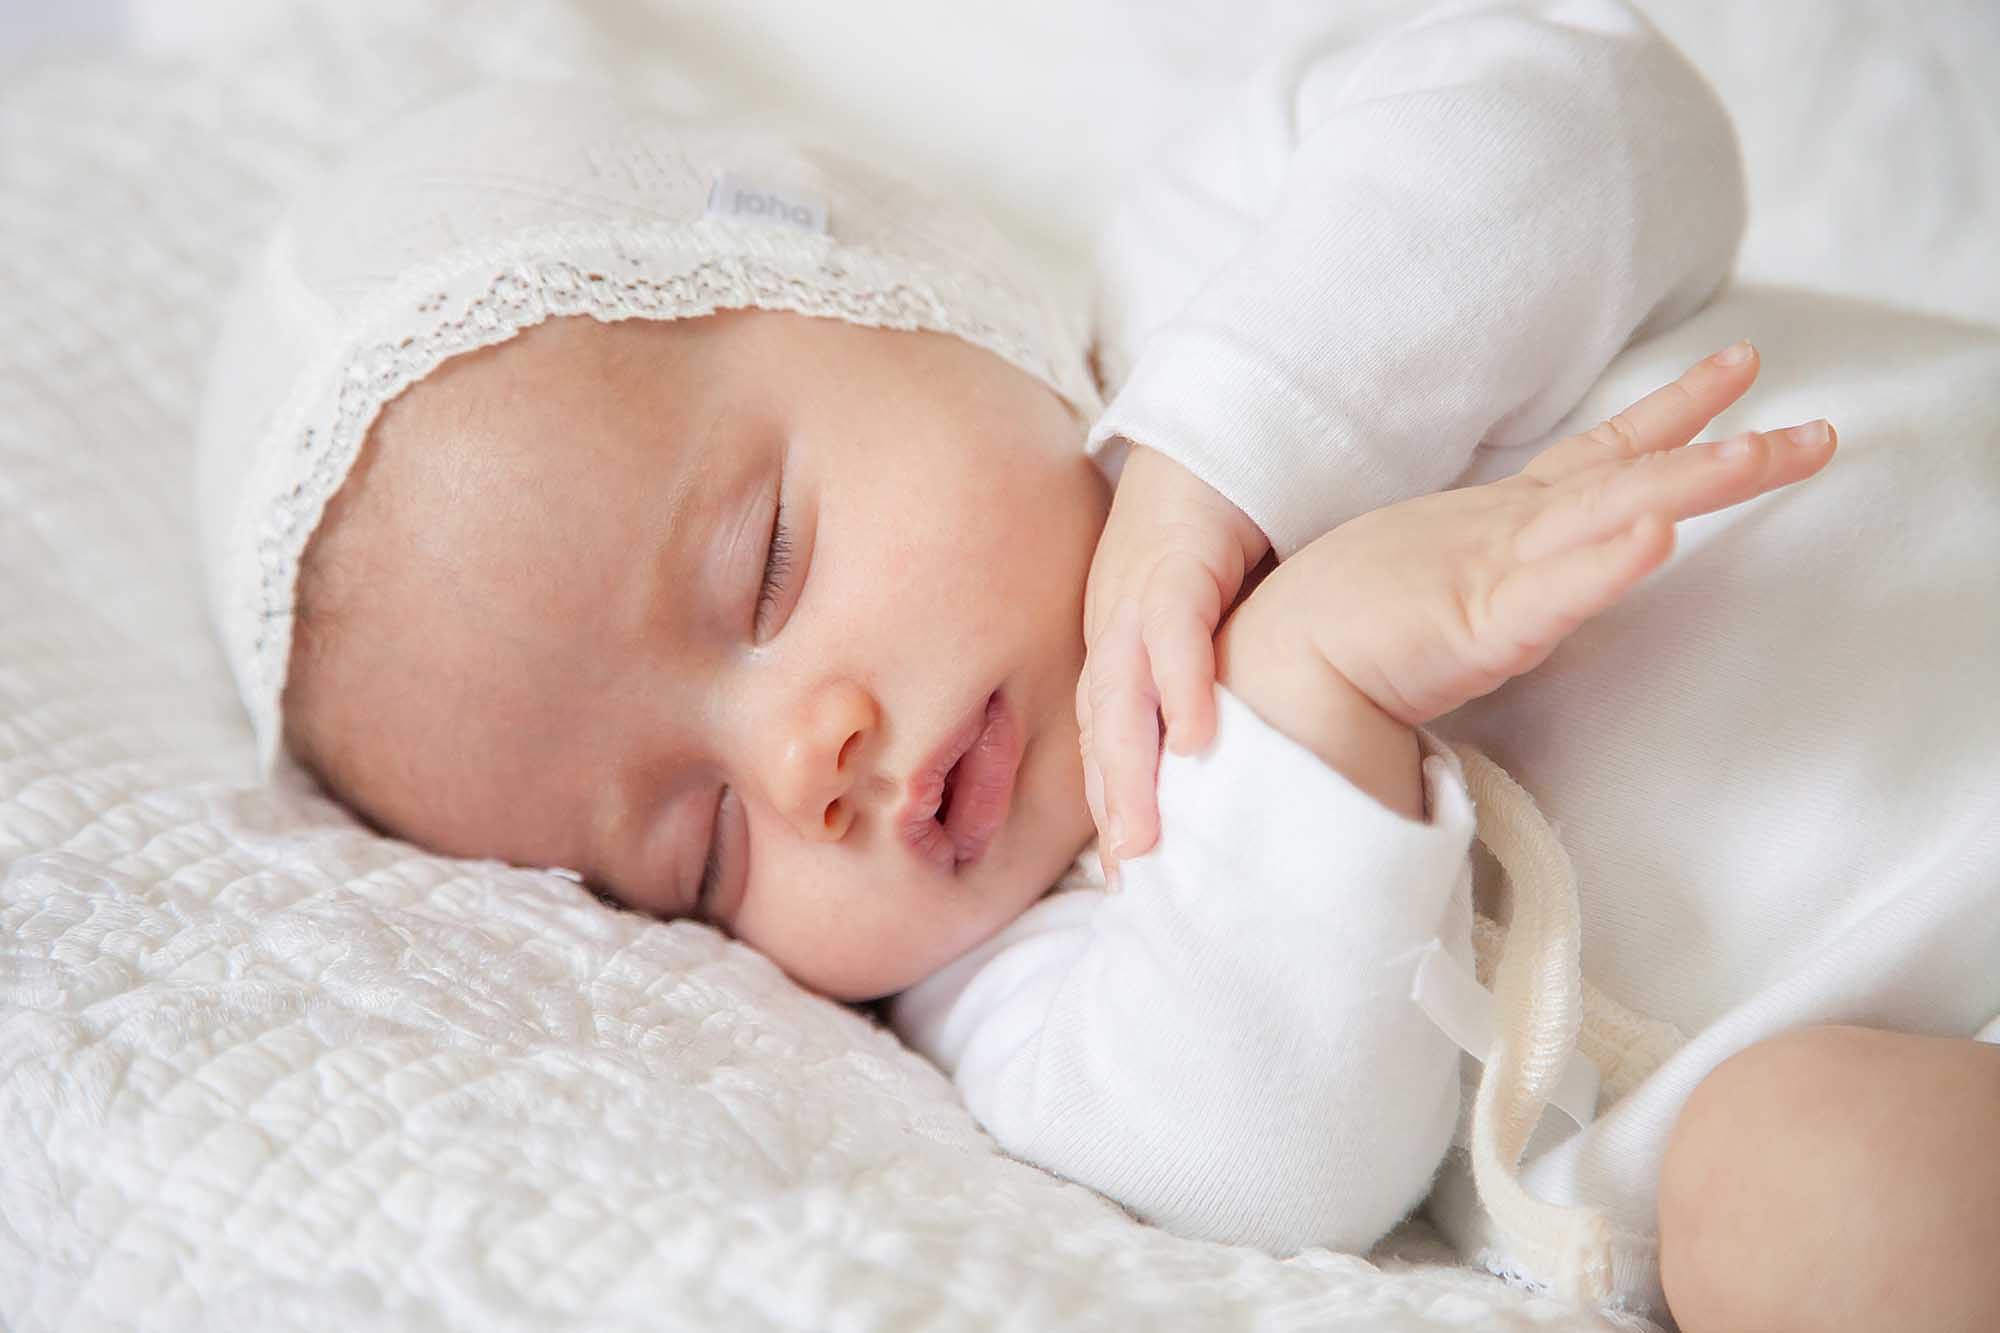 Baby Photographer East Grinstead | Baby sleeping on a bed